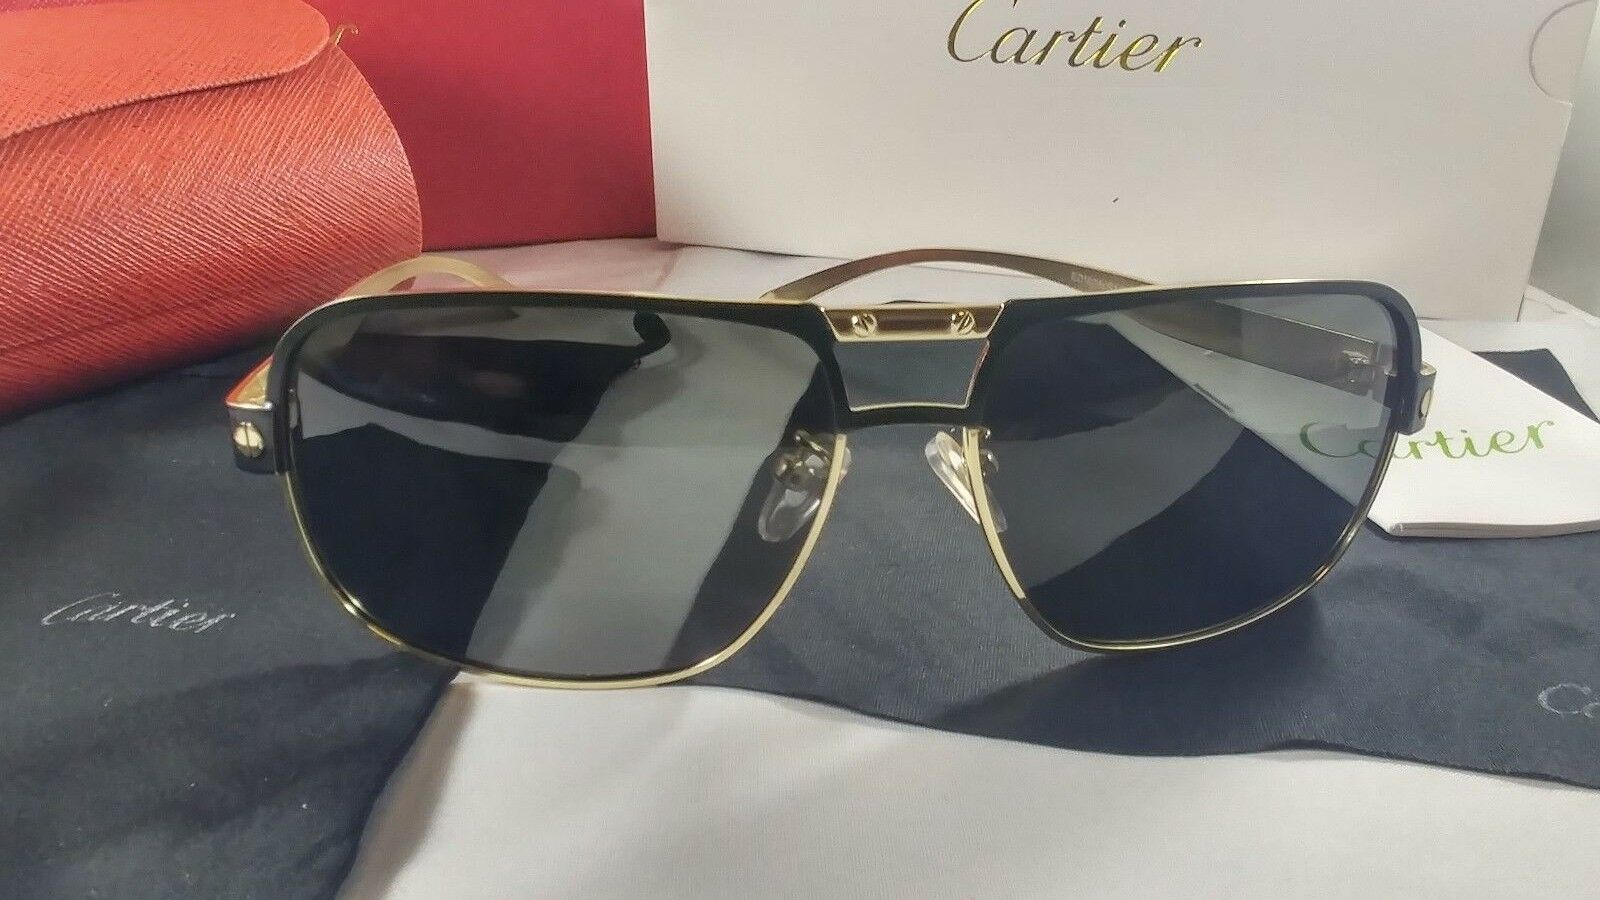 8cf19f8d1508 Cartier Santos Aviator Sunglasses Price - Restaurant and Palinka Bar